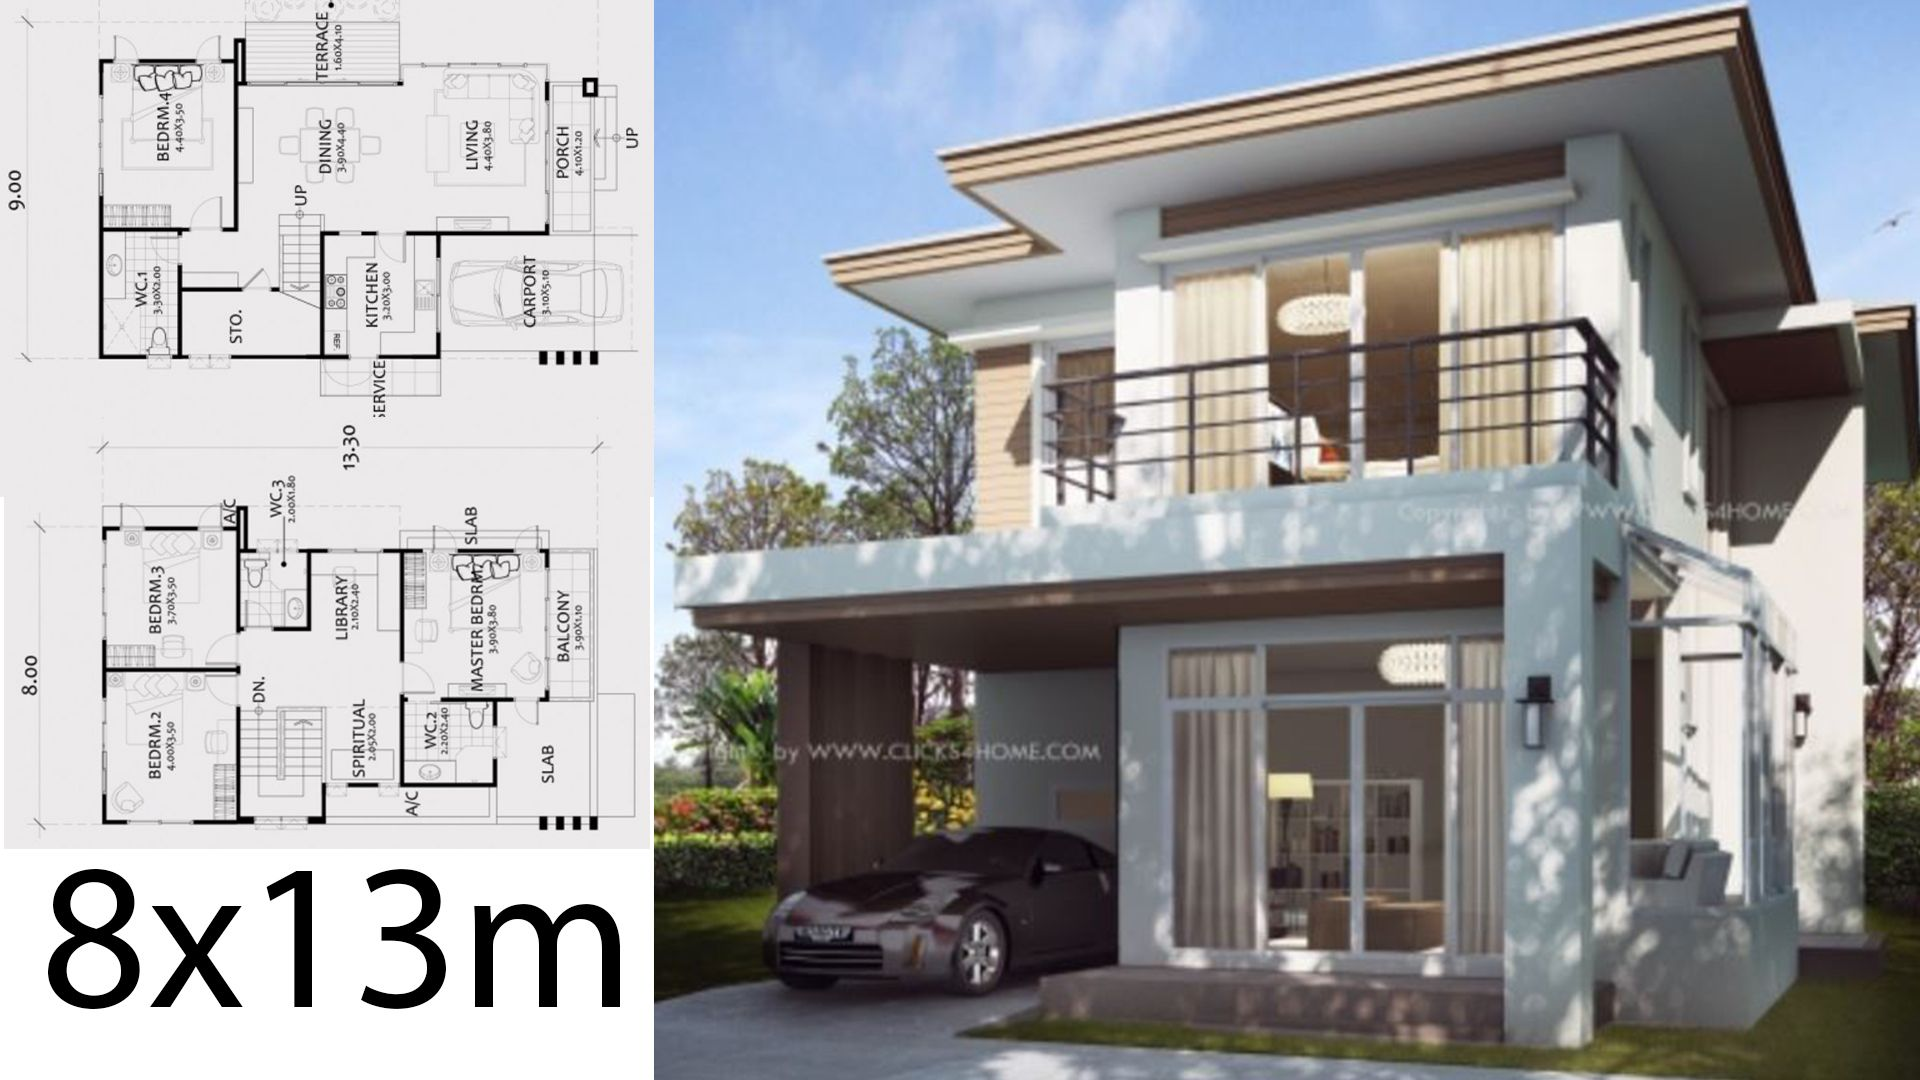 Home Design Plan 8x13m With 4 Bedrooms House Description One Car Parking And Garden Ground Level Living R Home Design Plan House Design Bungalow Floor Plans